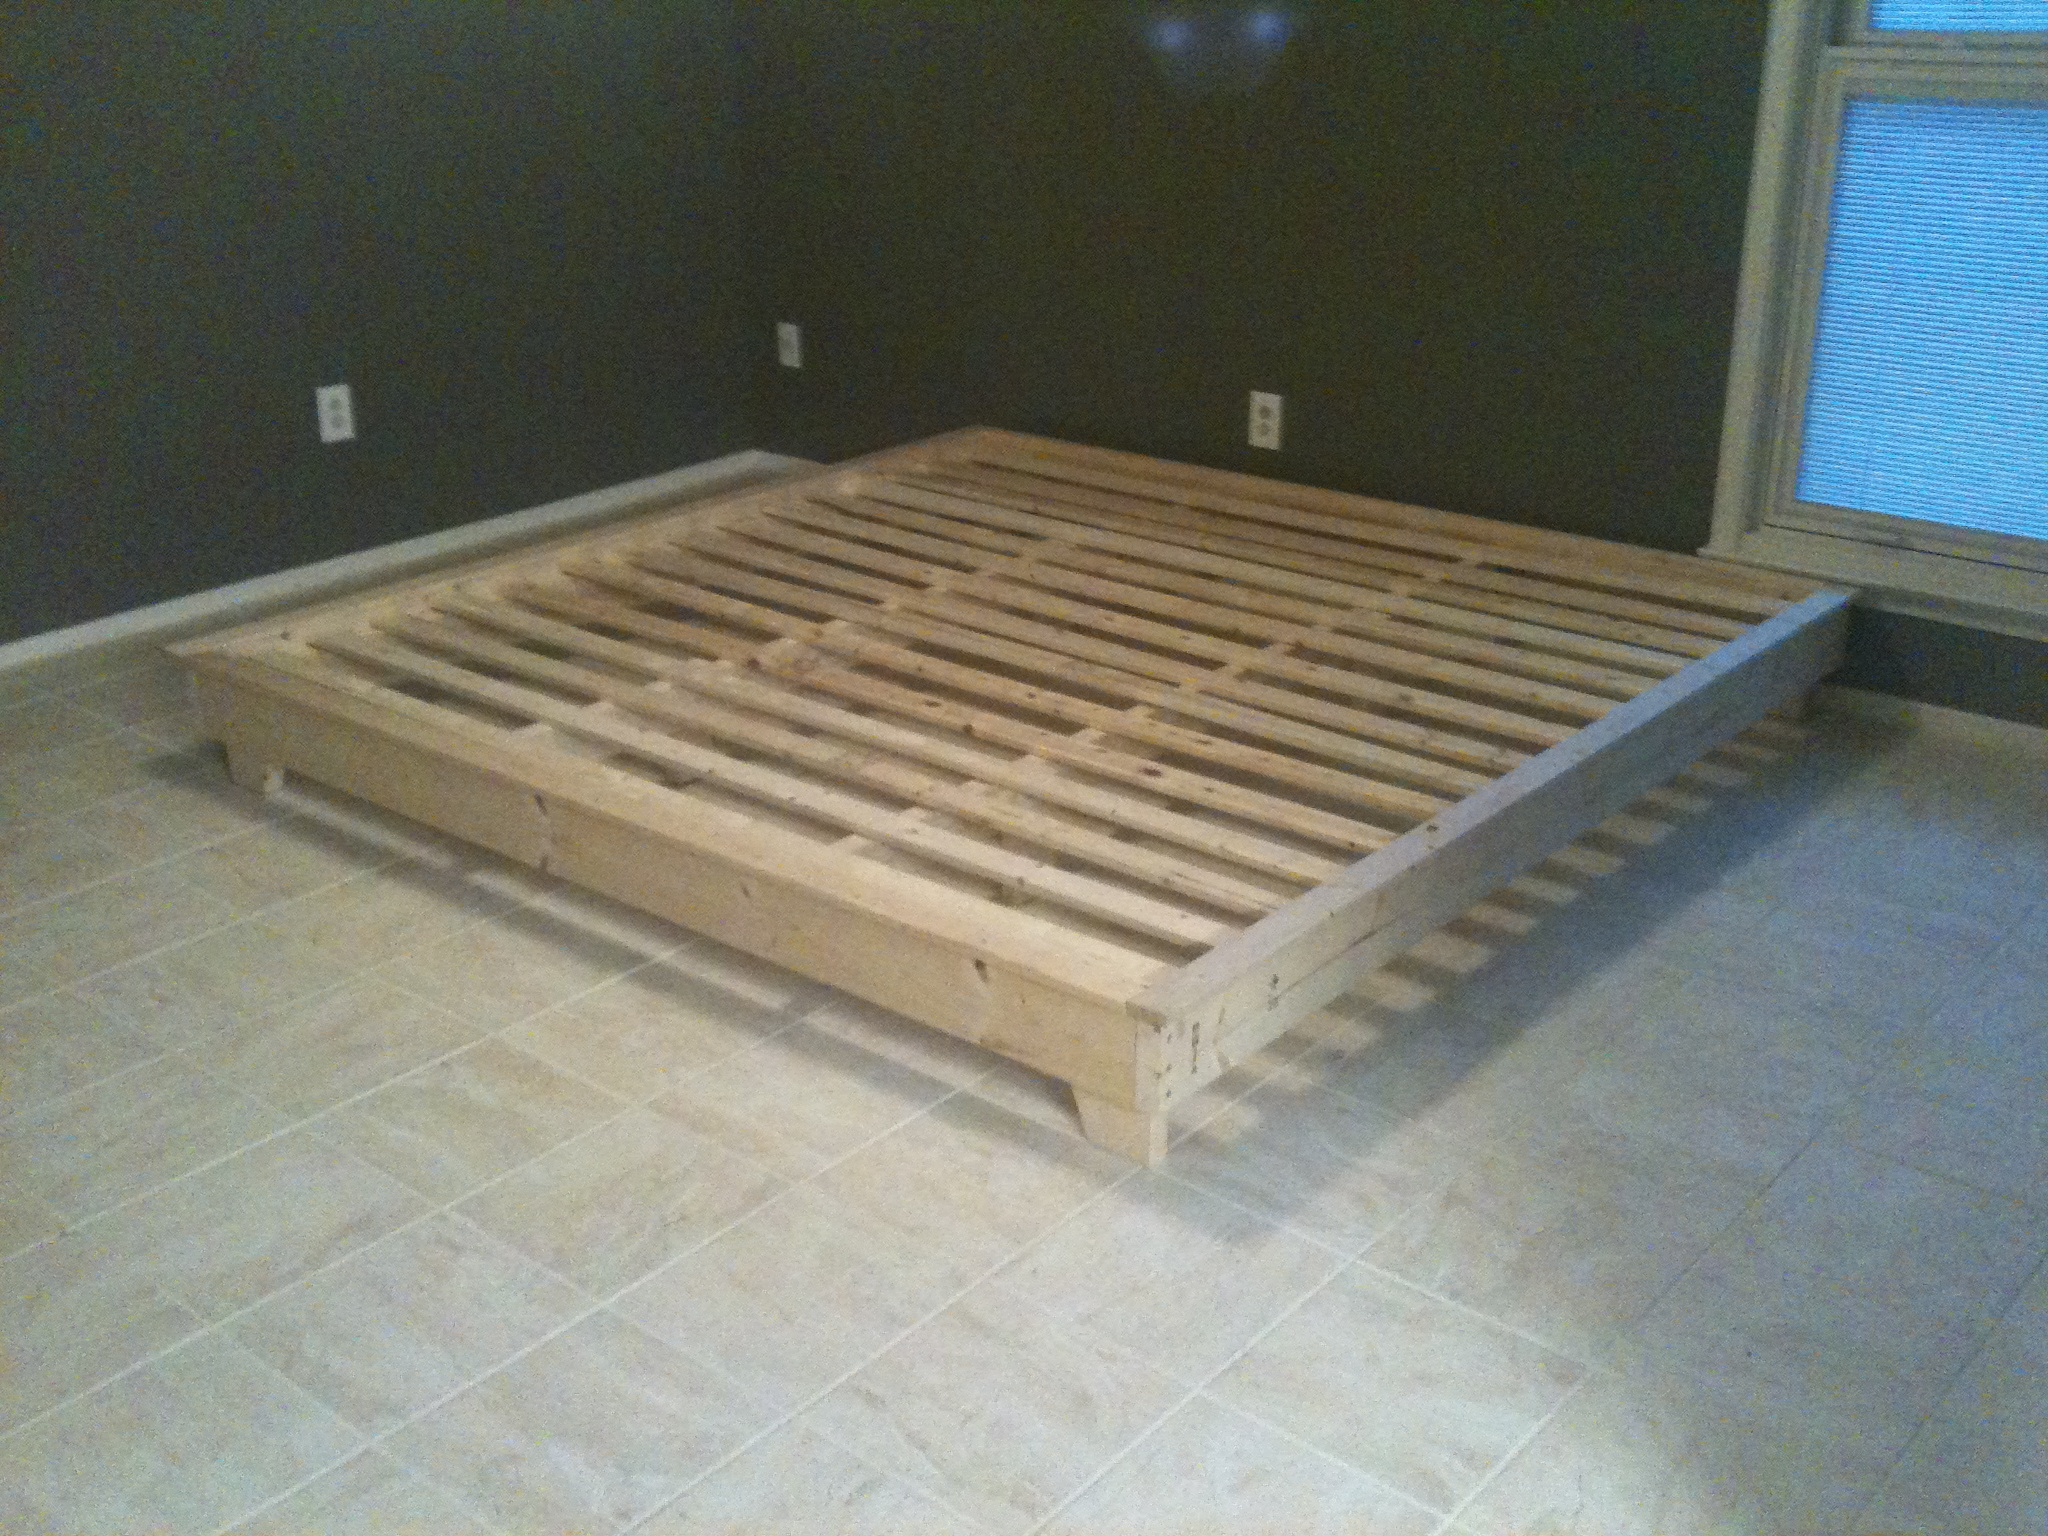 ... King Bed Platform Plans PDF japanese platform bed design plans